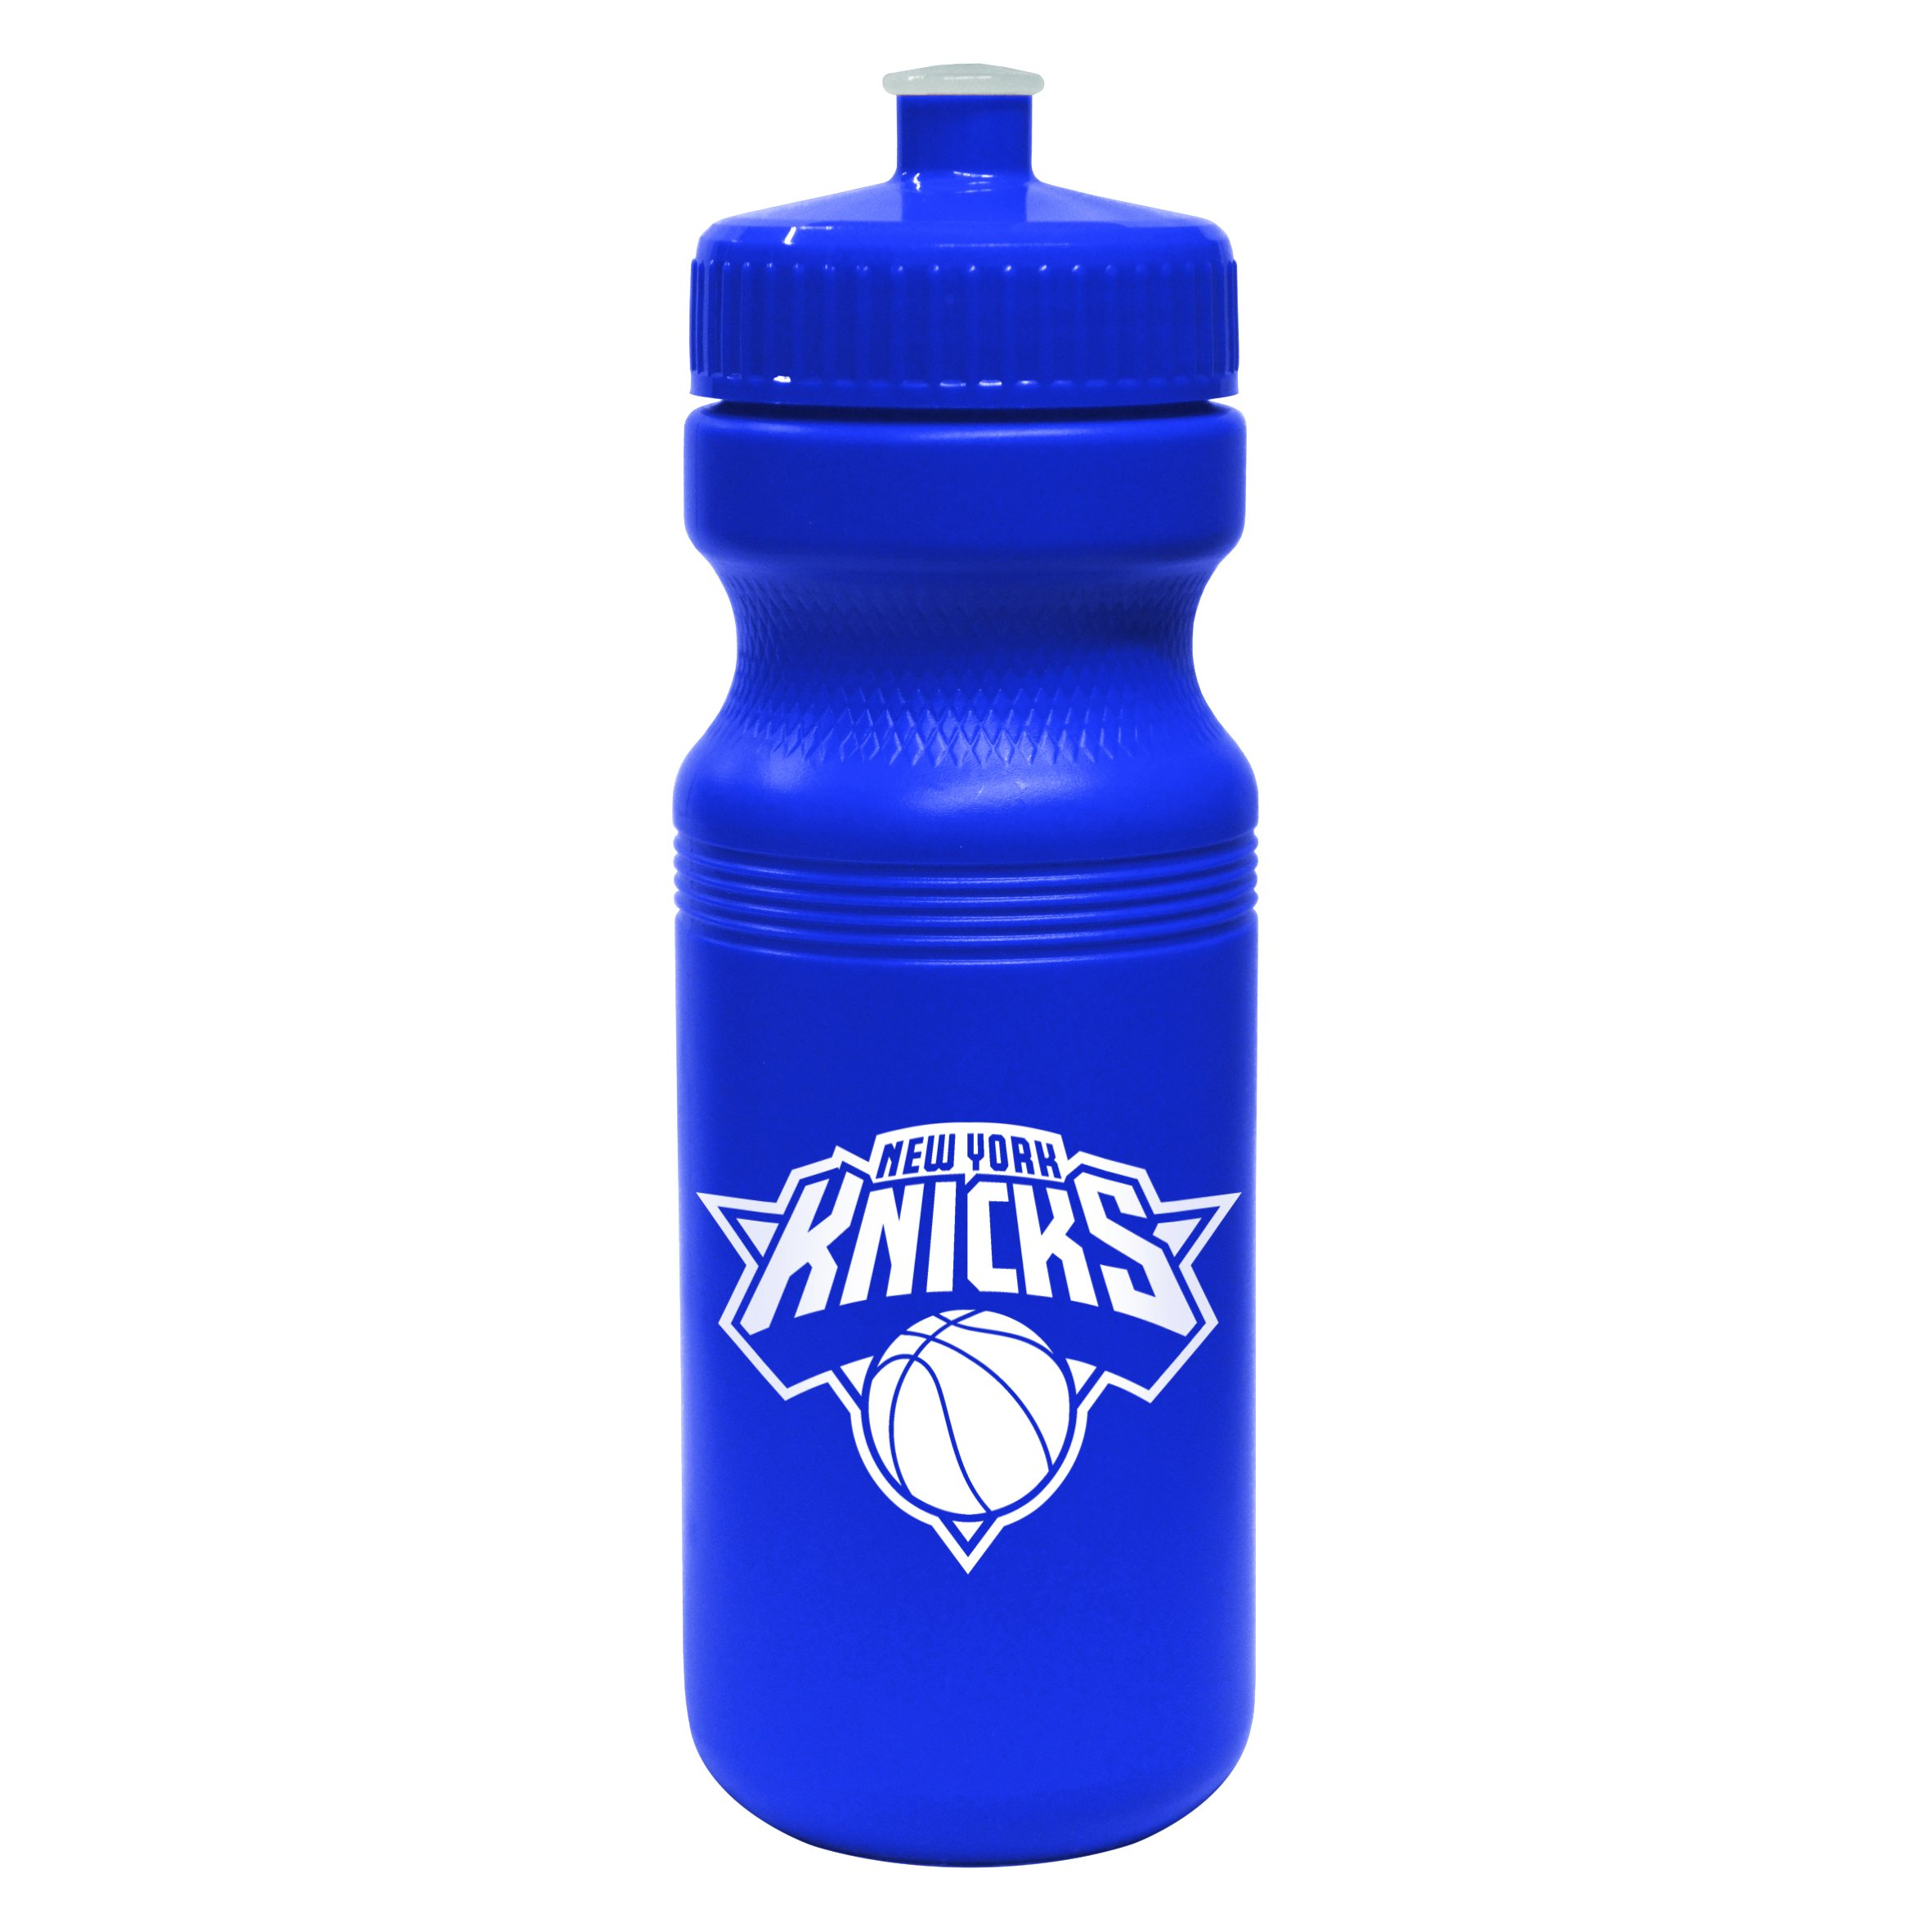 NBA New York Knicks Opaque Squeeze Water Bottle, 24-ounce by Boelter Brands